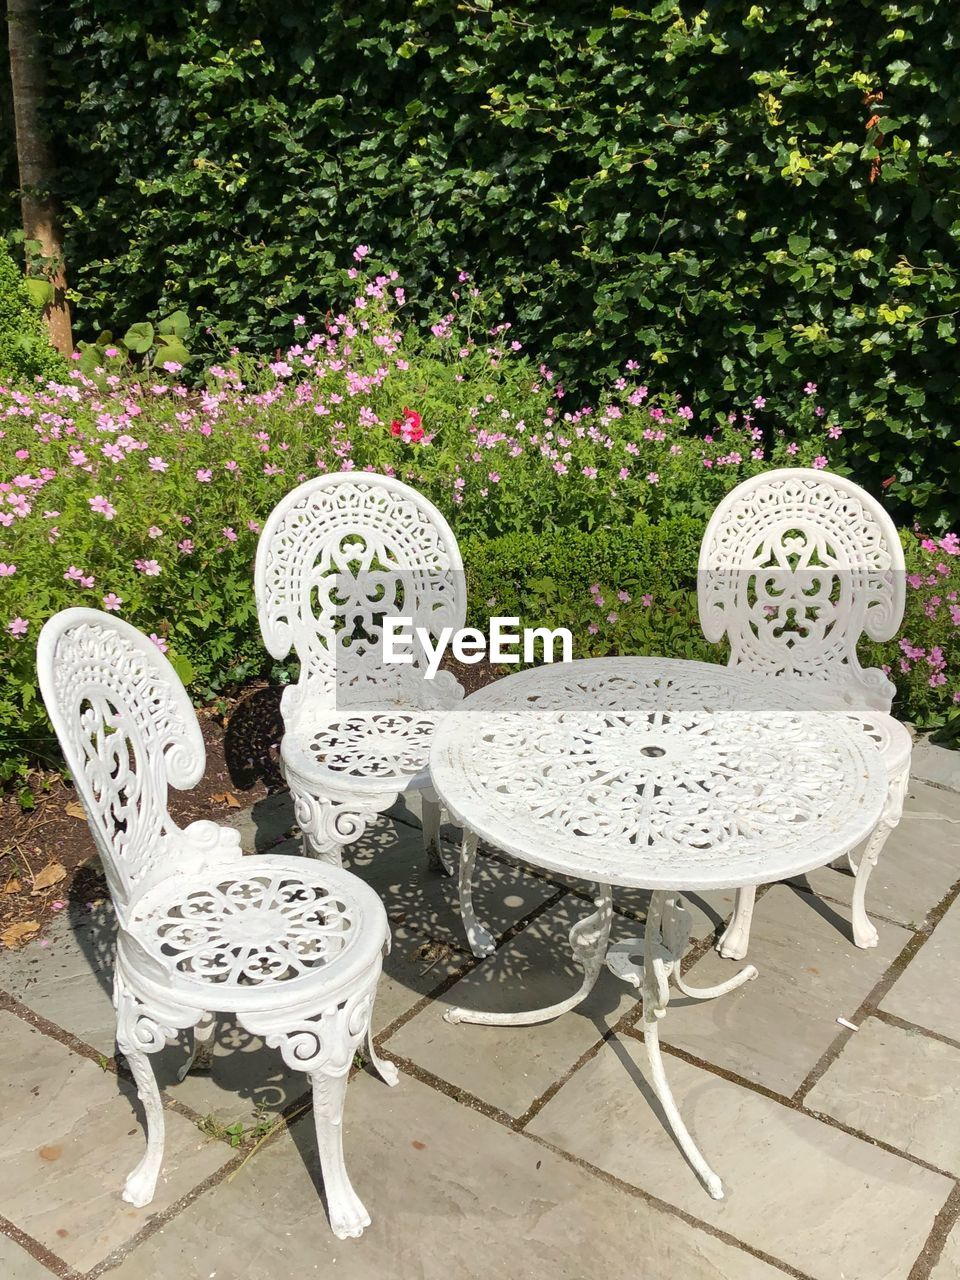 plant, seat, chair, nature, table, flower, no people, day, white color, grass, flowering plant, front or back yard, absence, beauty in nature, outdoors, garden, pattern, formal garden, decoration, park, ornamental garden